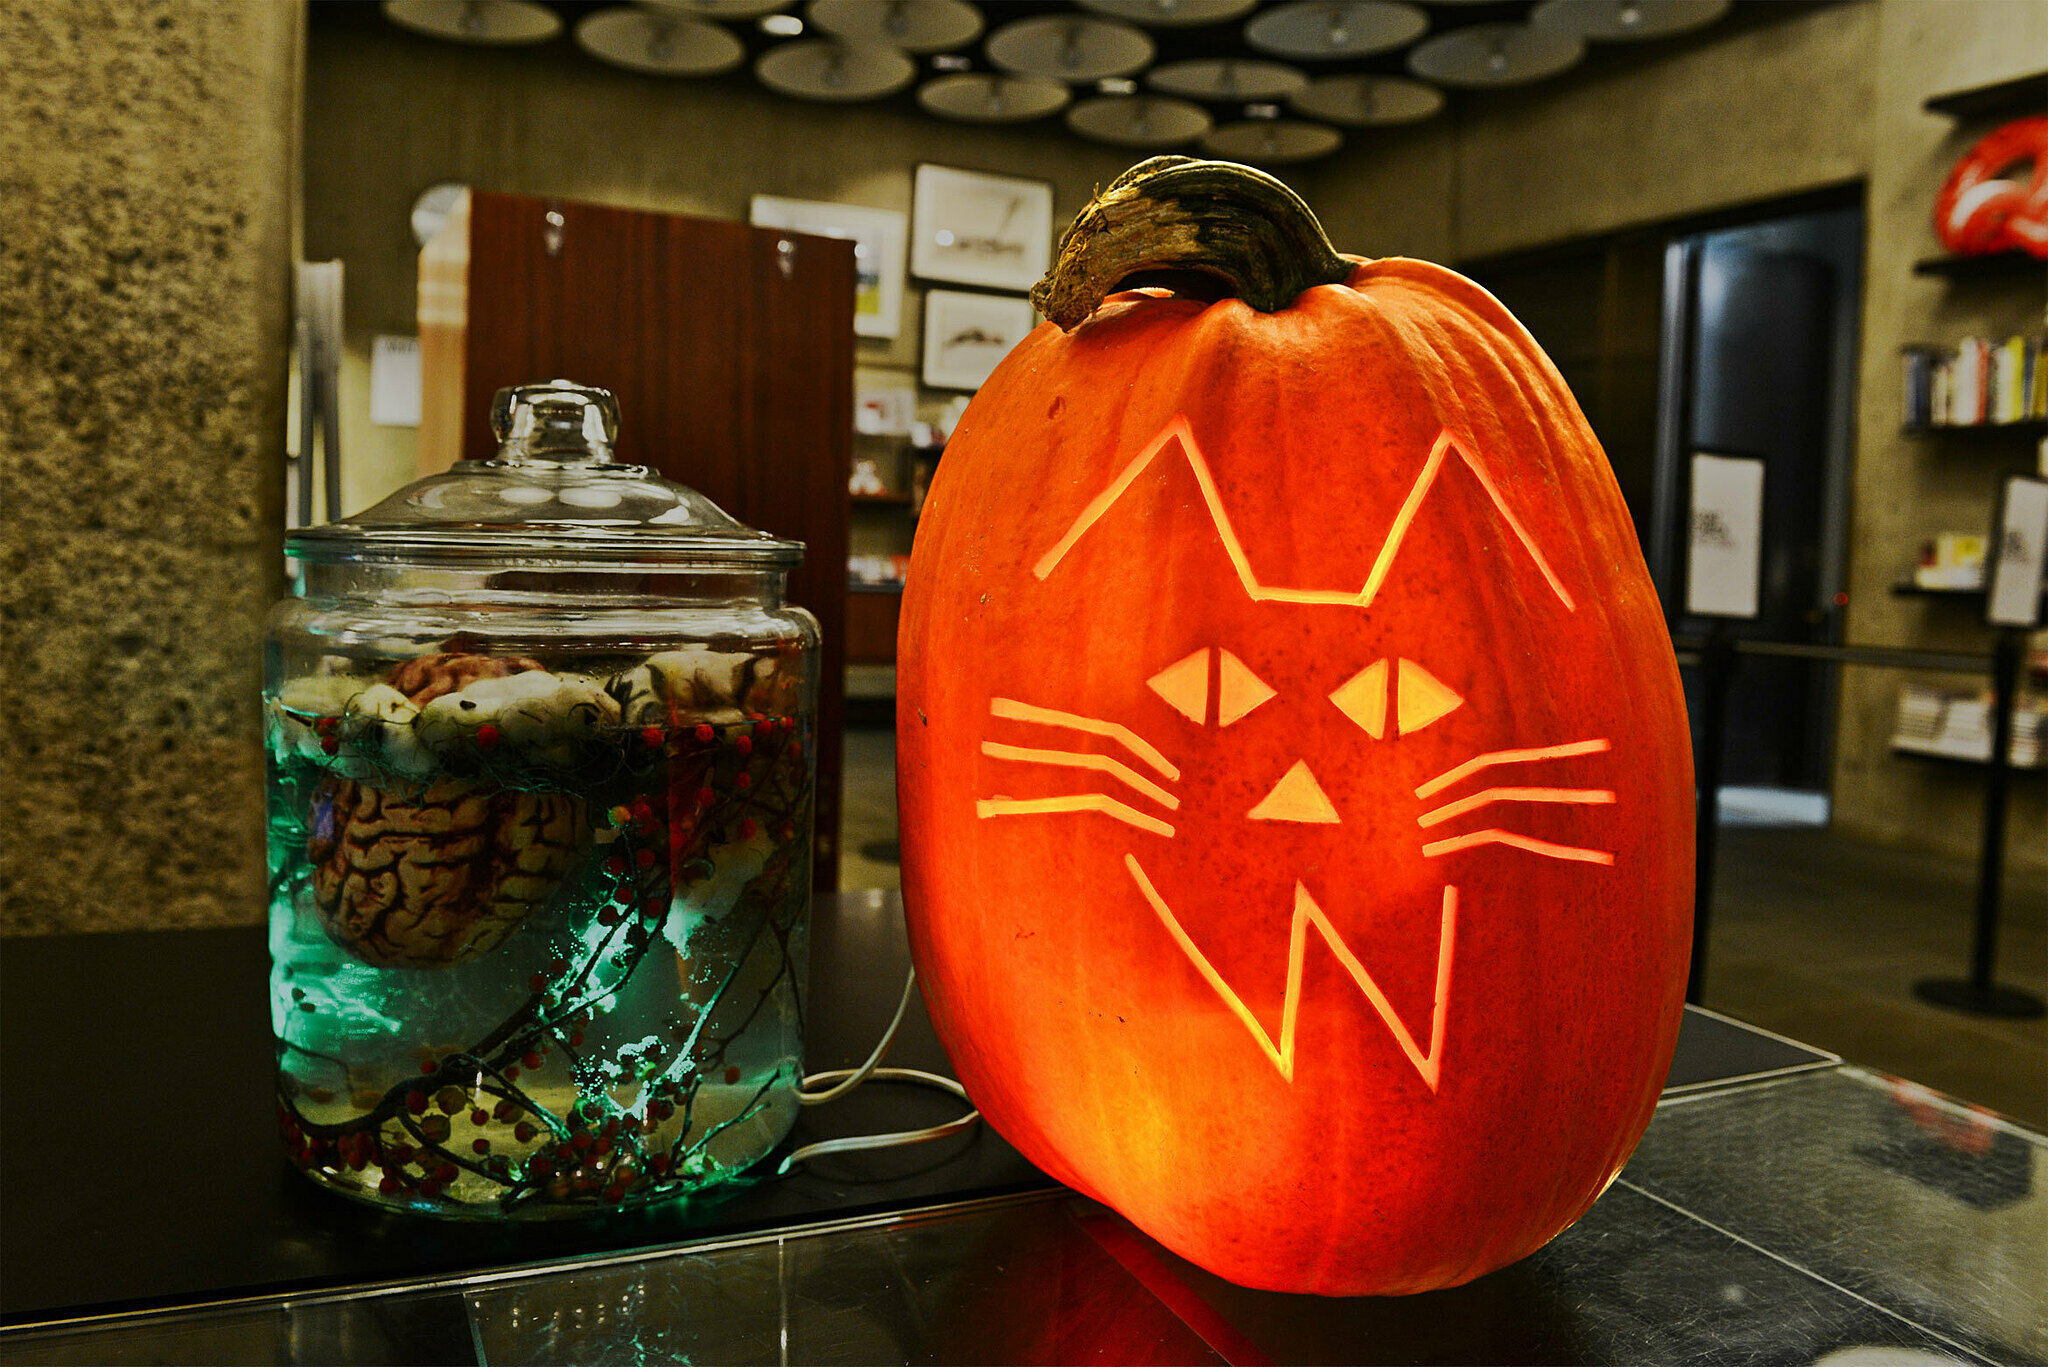 Cat and whitney logo on a pumkin next to a jar with brains in it.